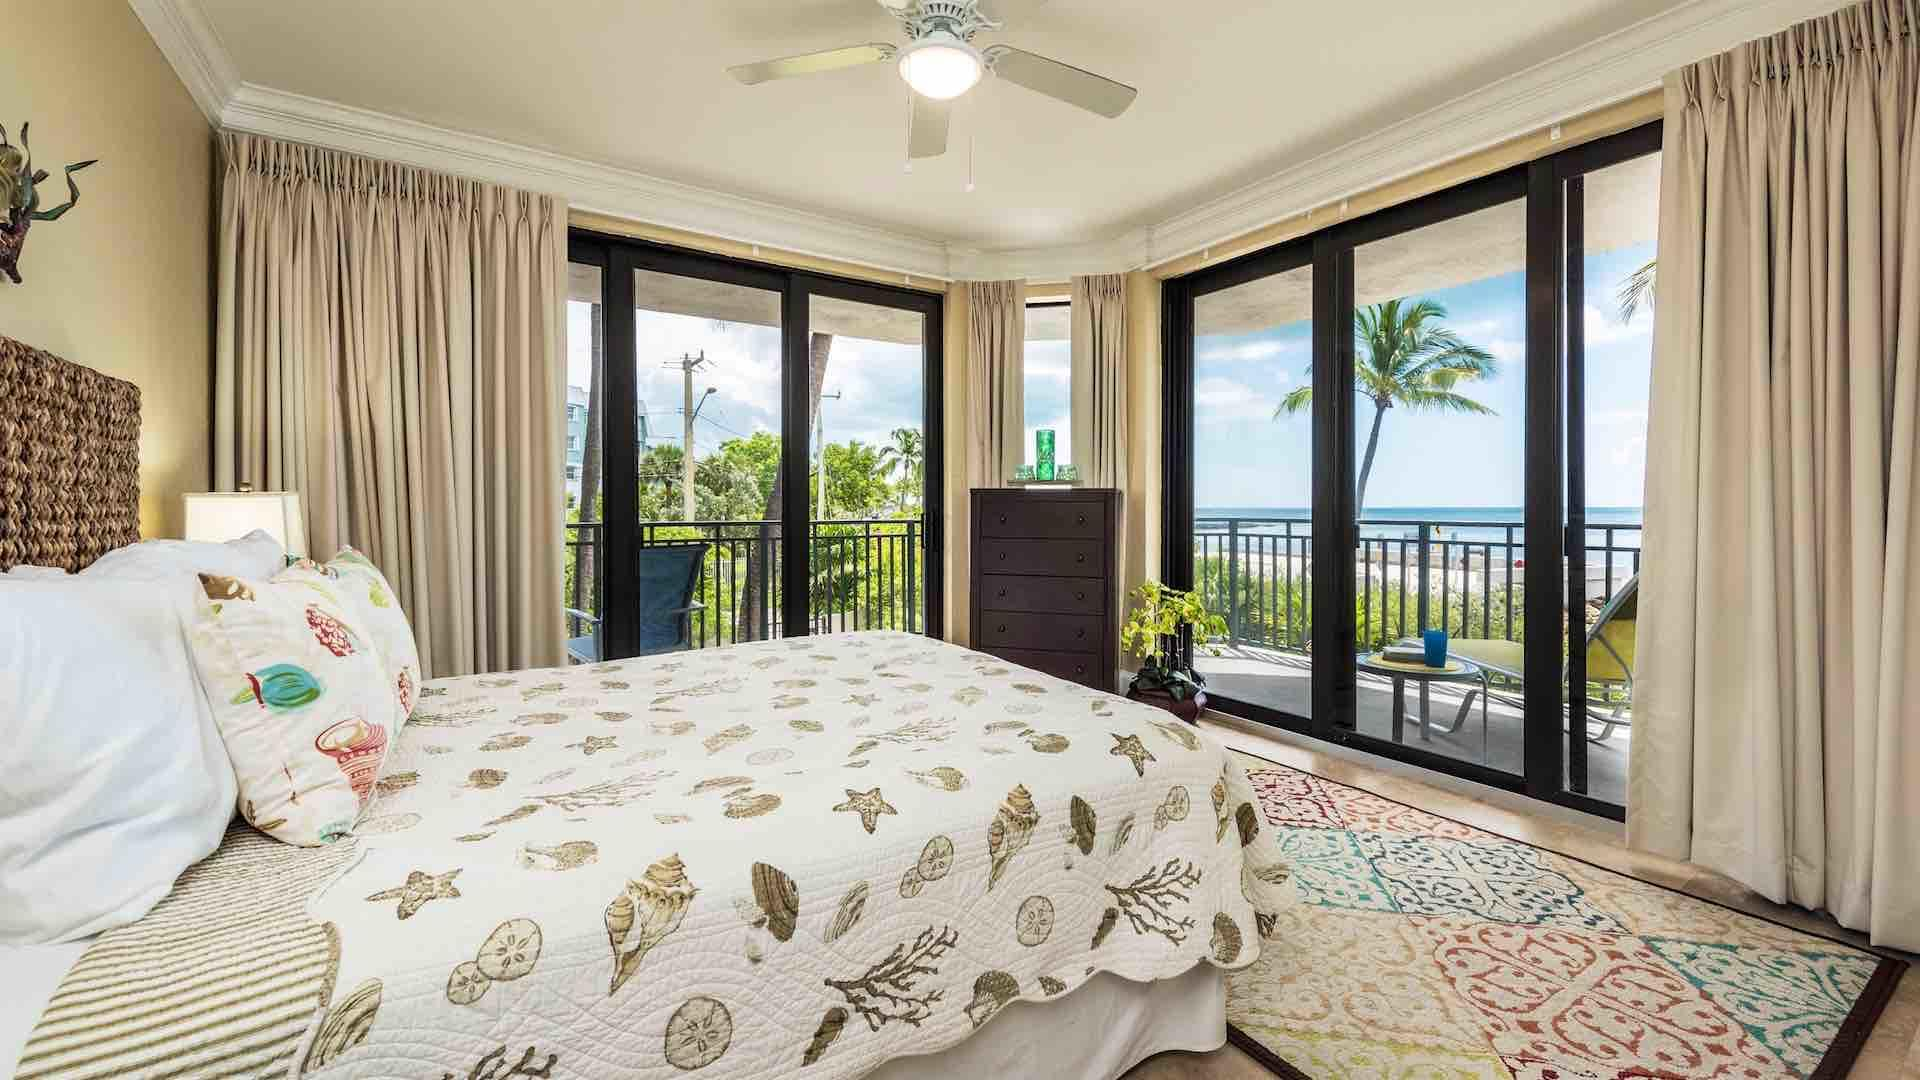 The second bedroom has a Queen bed and beautiful views of the ocean...